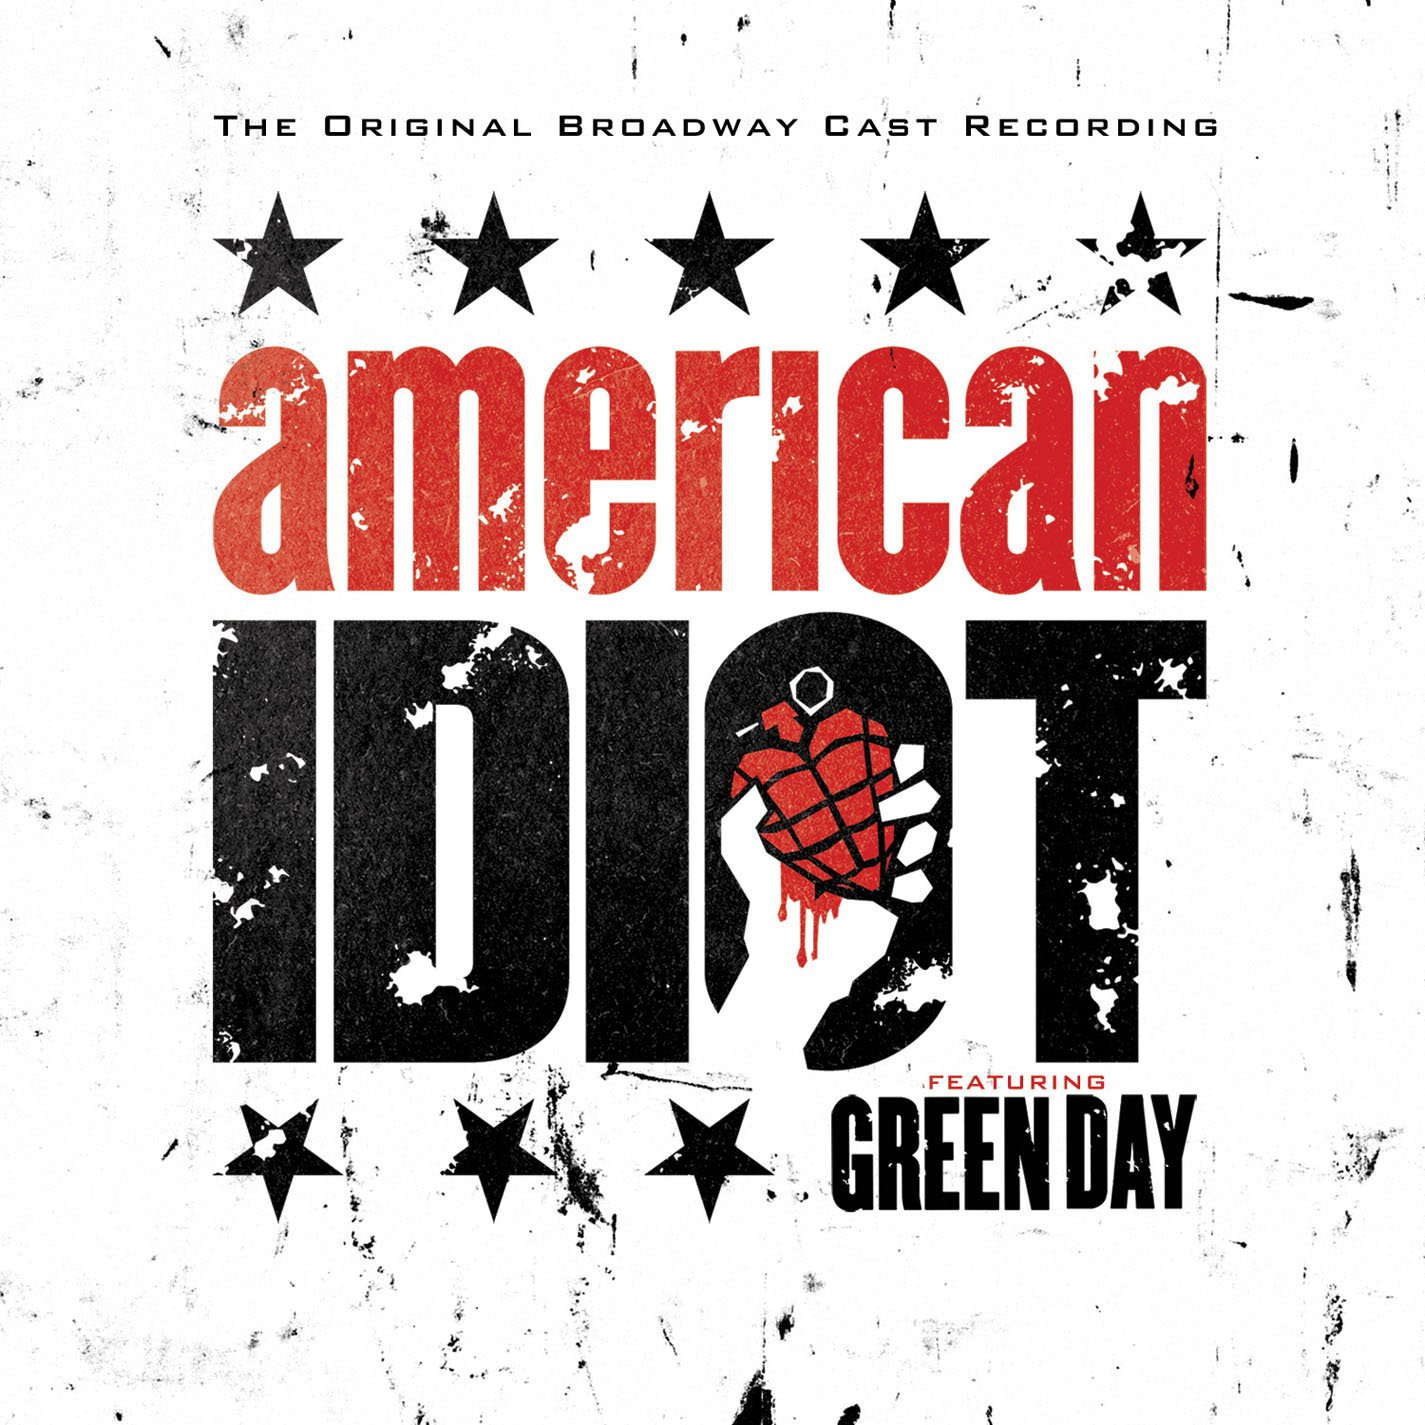 The idea of a Broadway musical based on Green Day's songs was a bit ridiculous, but the Green Day of the 2000s was nothing if not ambitious. And some of the parts of the show really worked, including this song. Even better was when the cast of the show and Green Day recorded a new version together.